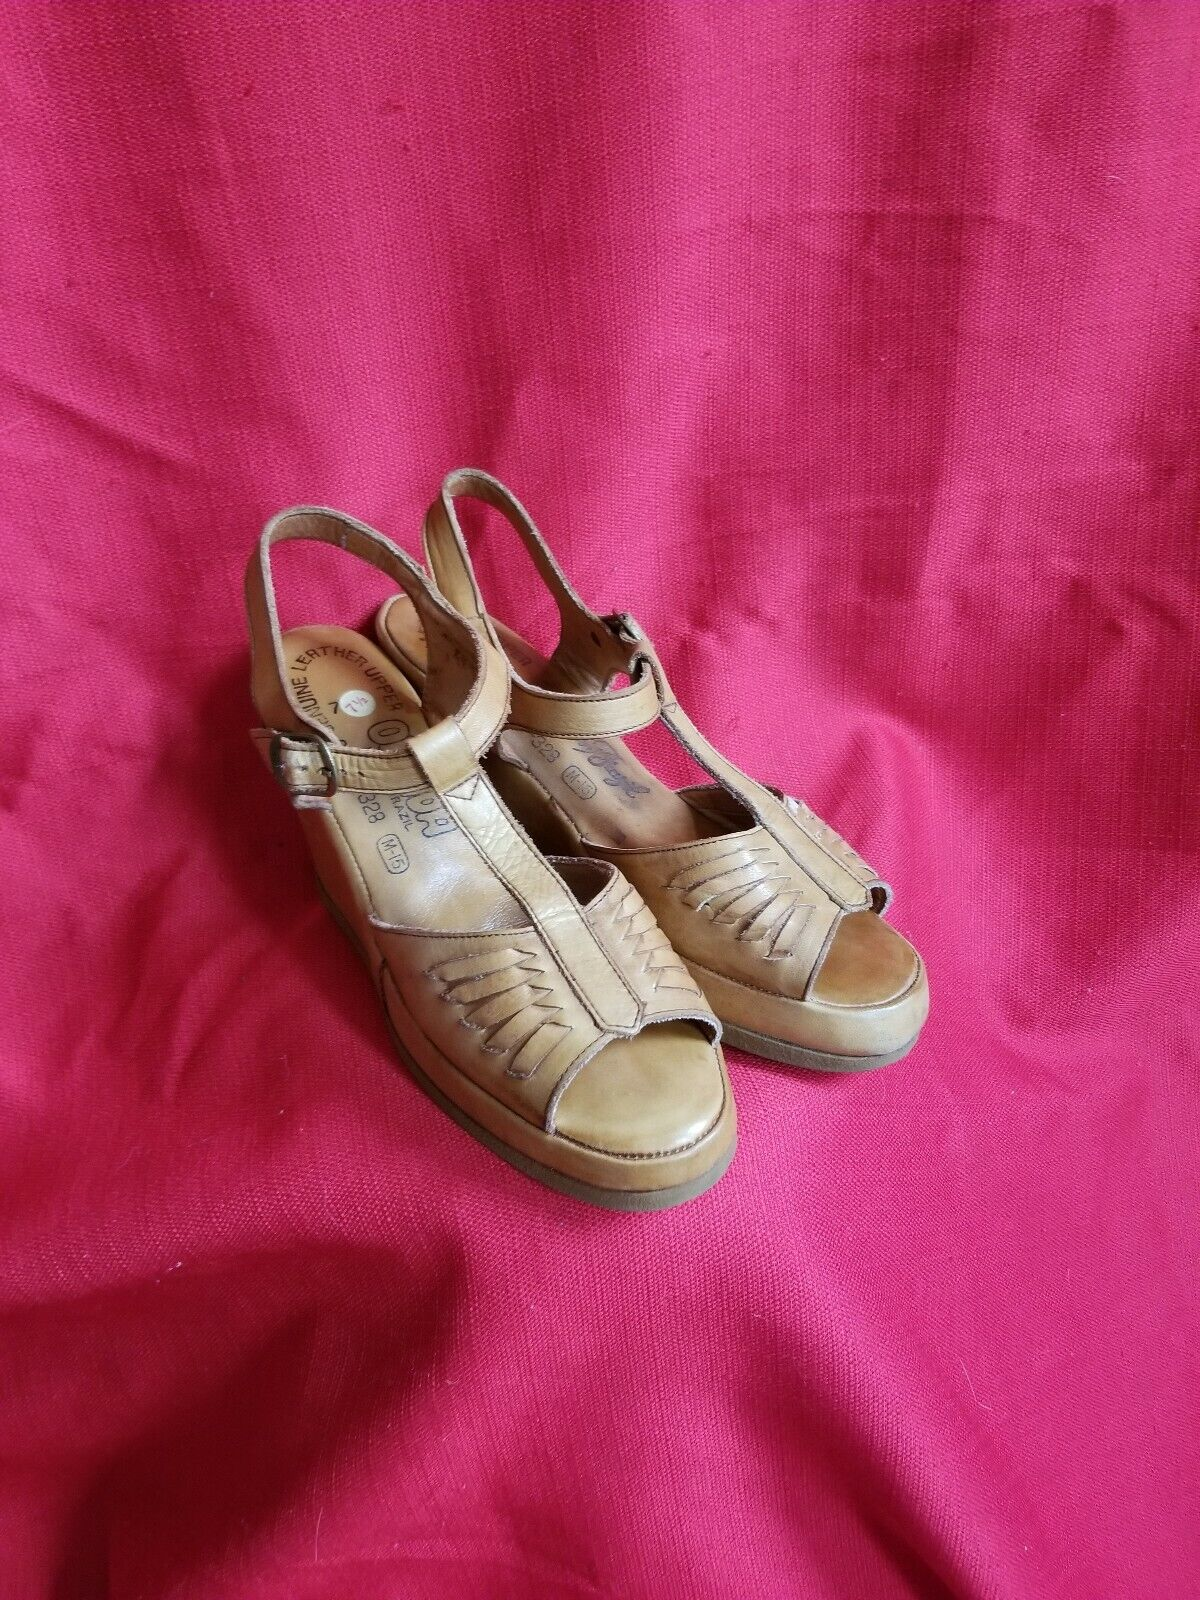 Vtg 1970s does 40s Leather Wedge Sandals Size 7.5… - image 2